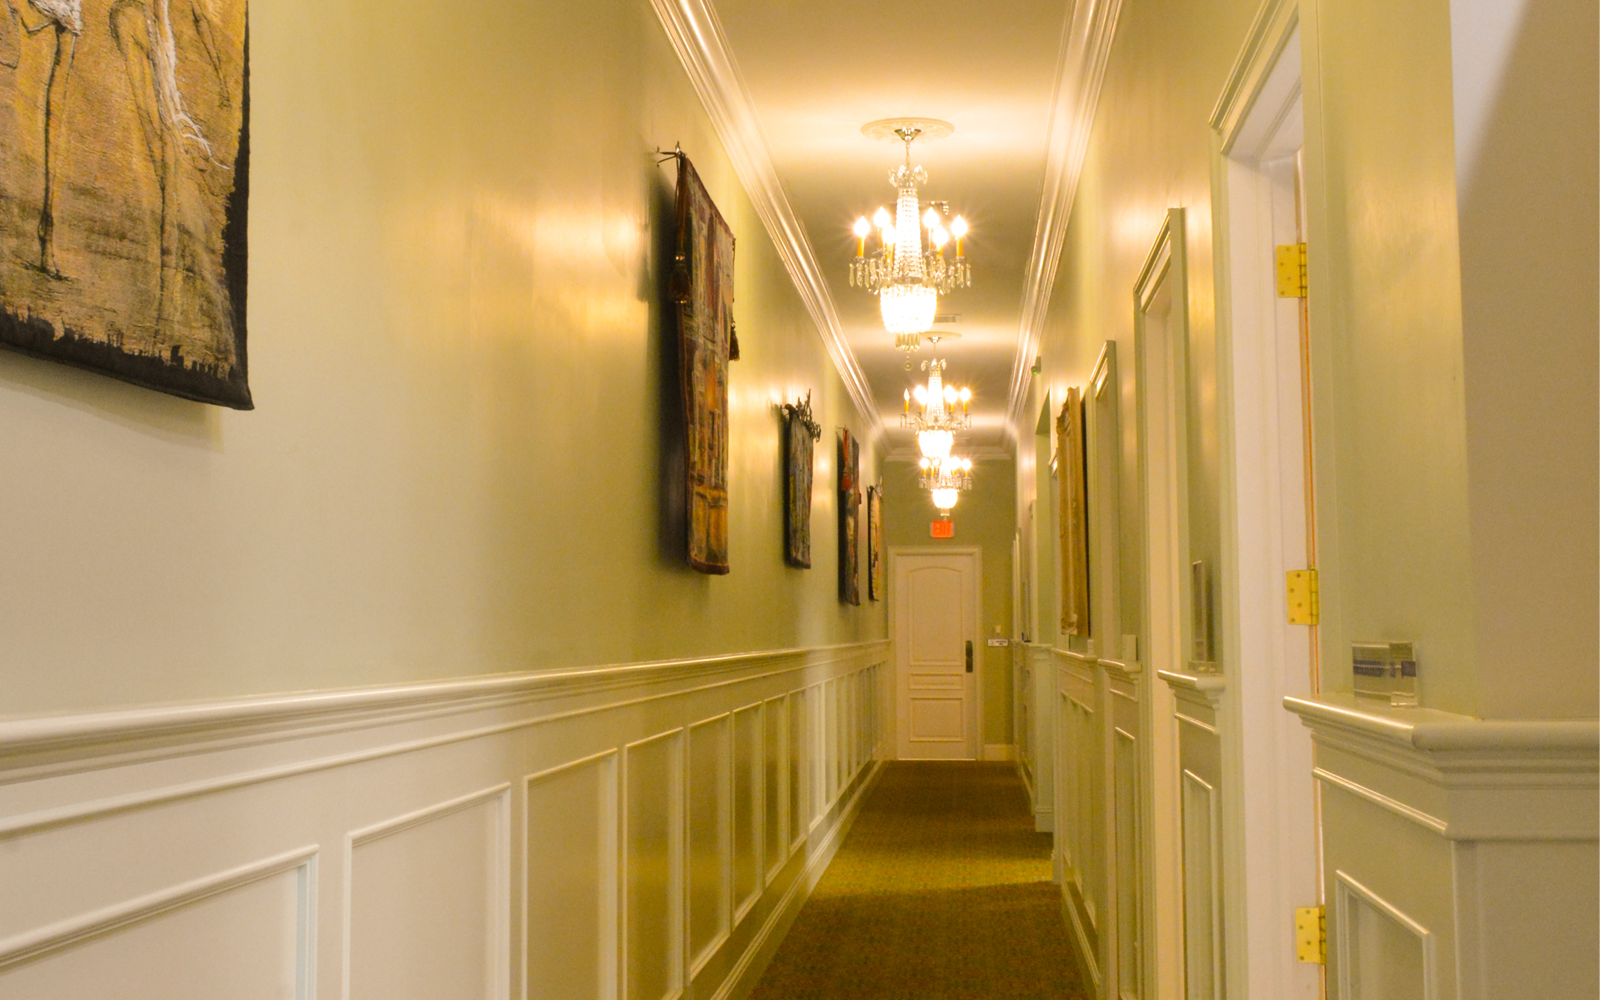 9 - Corridor to exam rooms